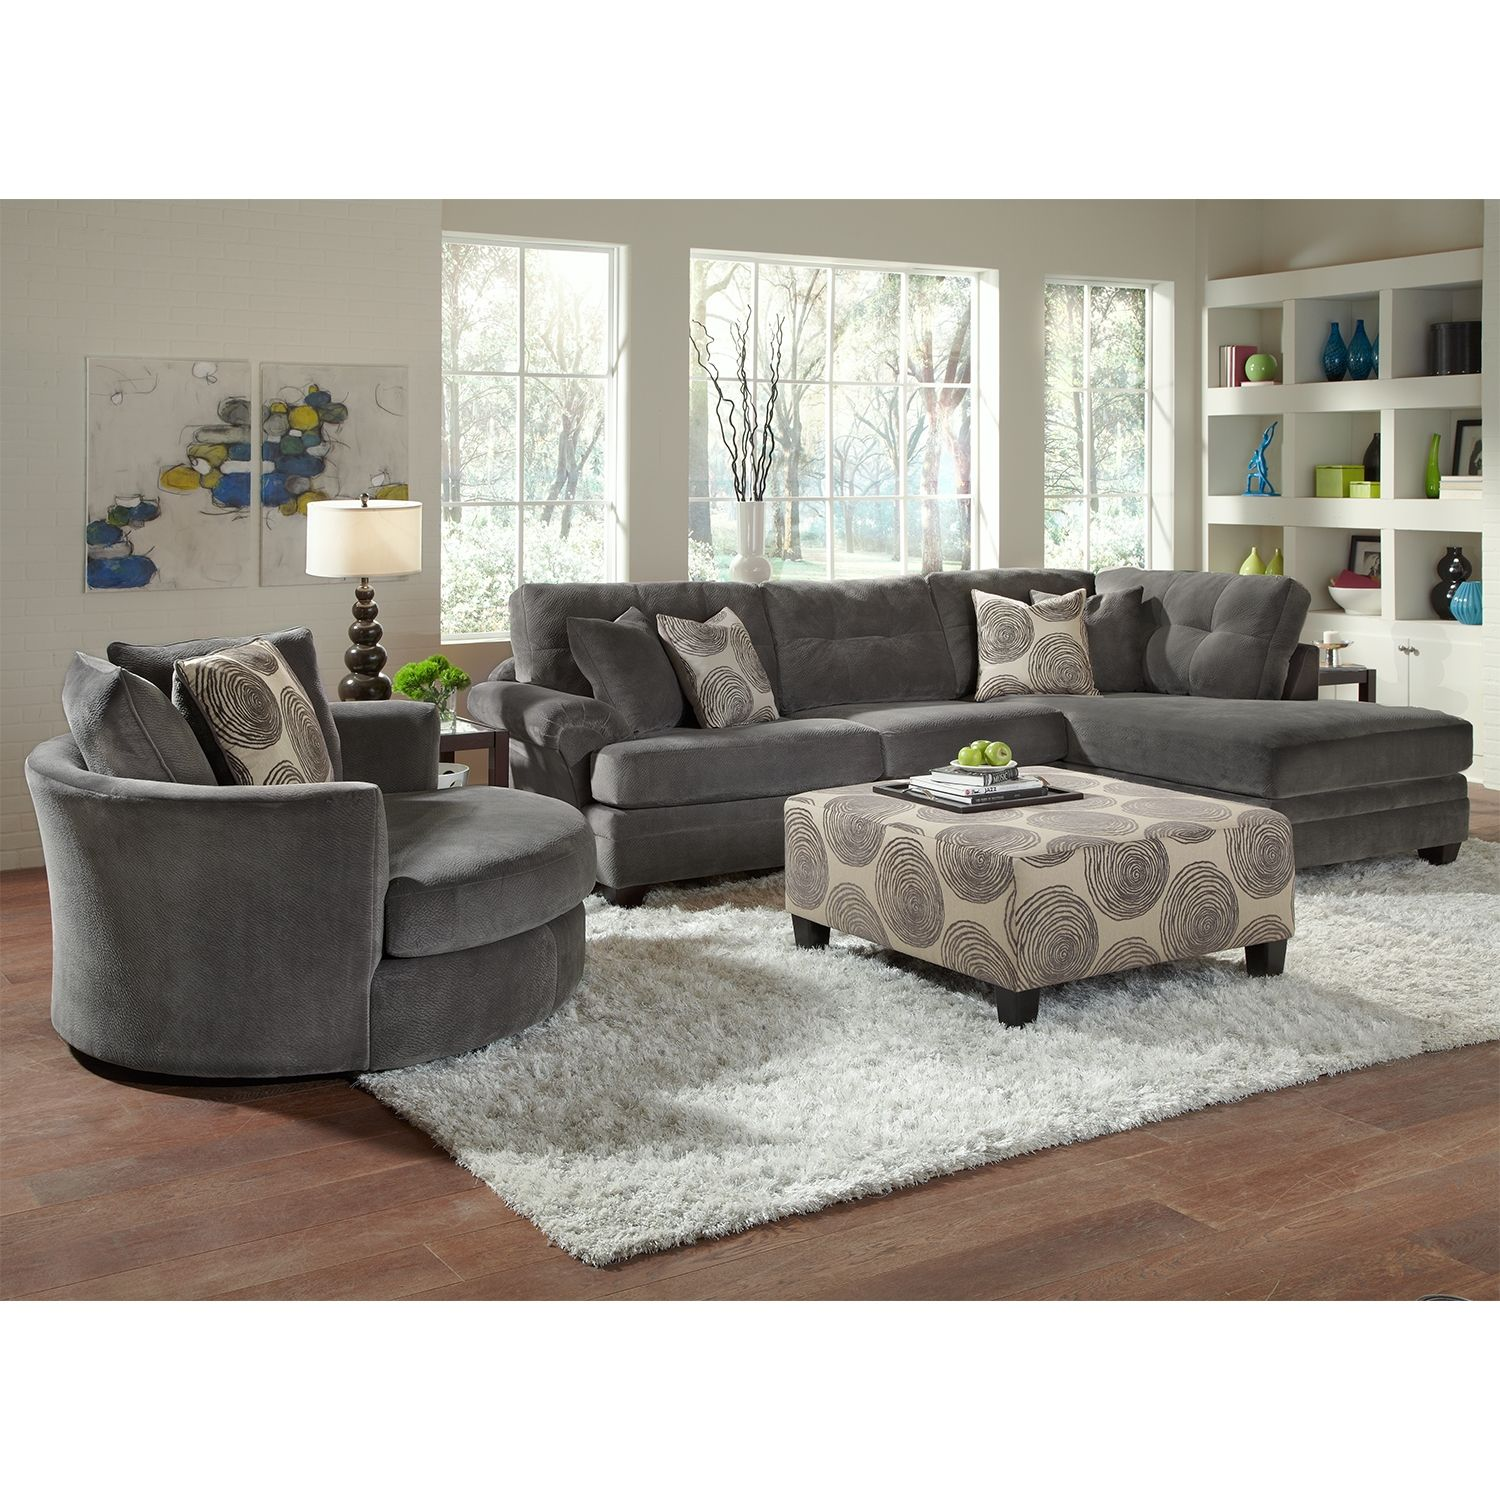 Catalina Gray Upholstery 2 Pc Sectional